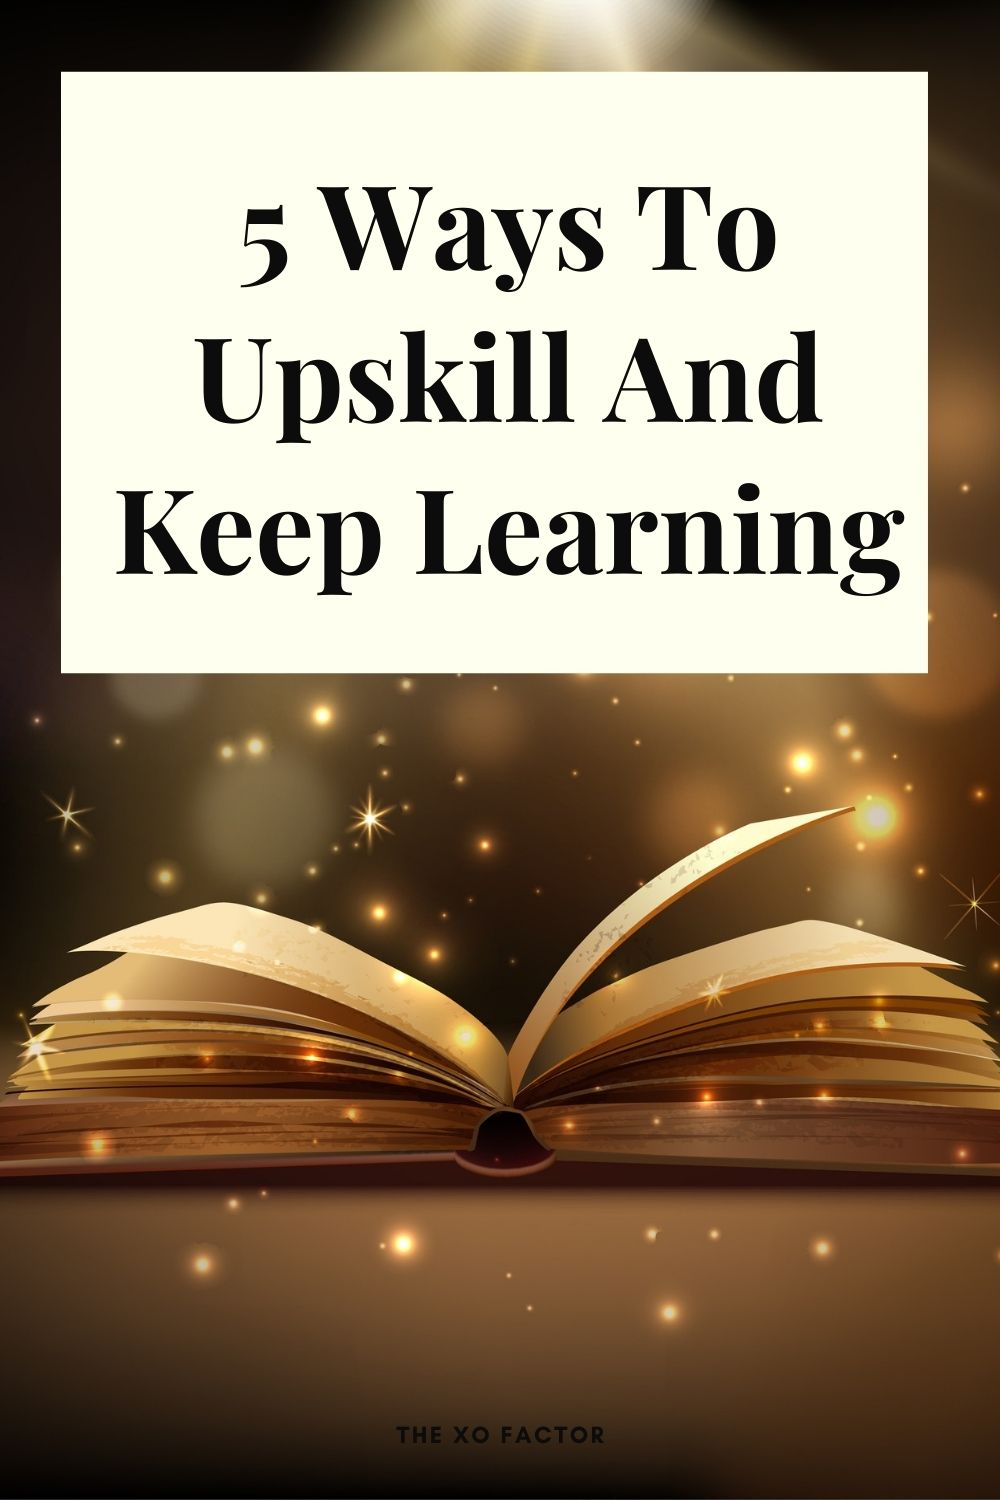 5 ways to Upskill and keep learning